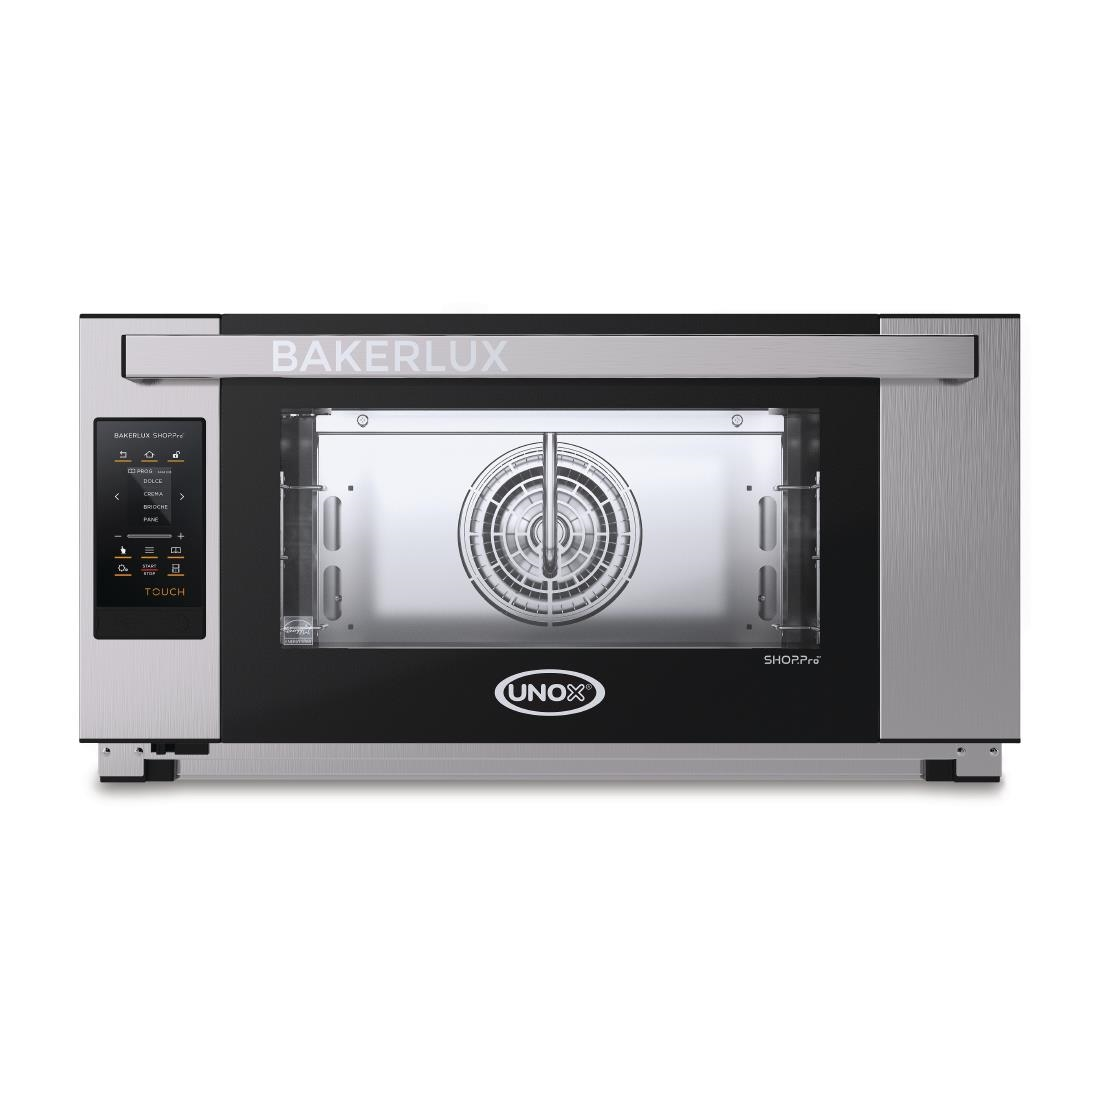 Unox Bakerlux SHOP Pro Elena Touch 3 Grid Convection Oven